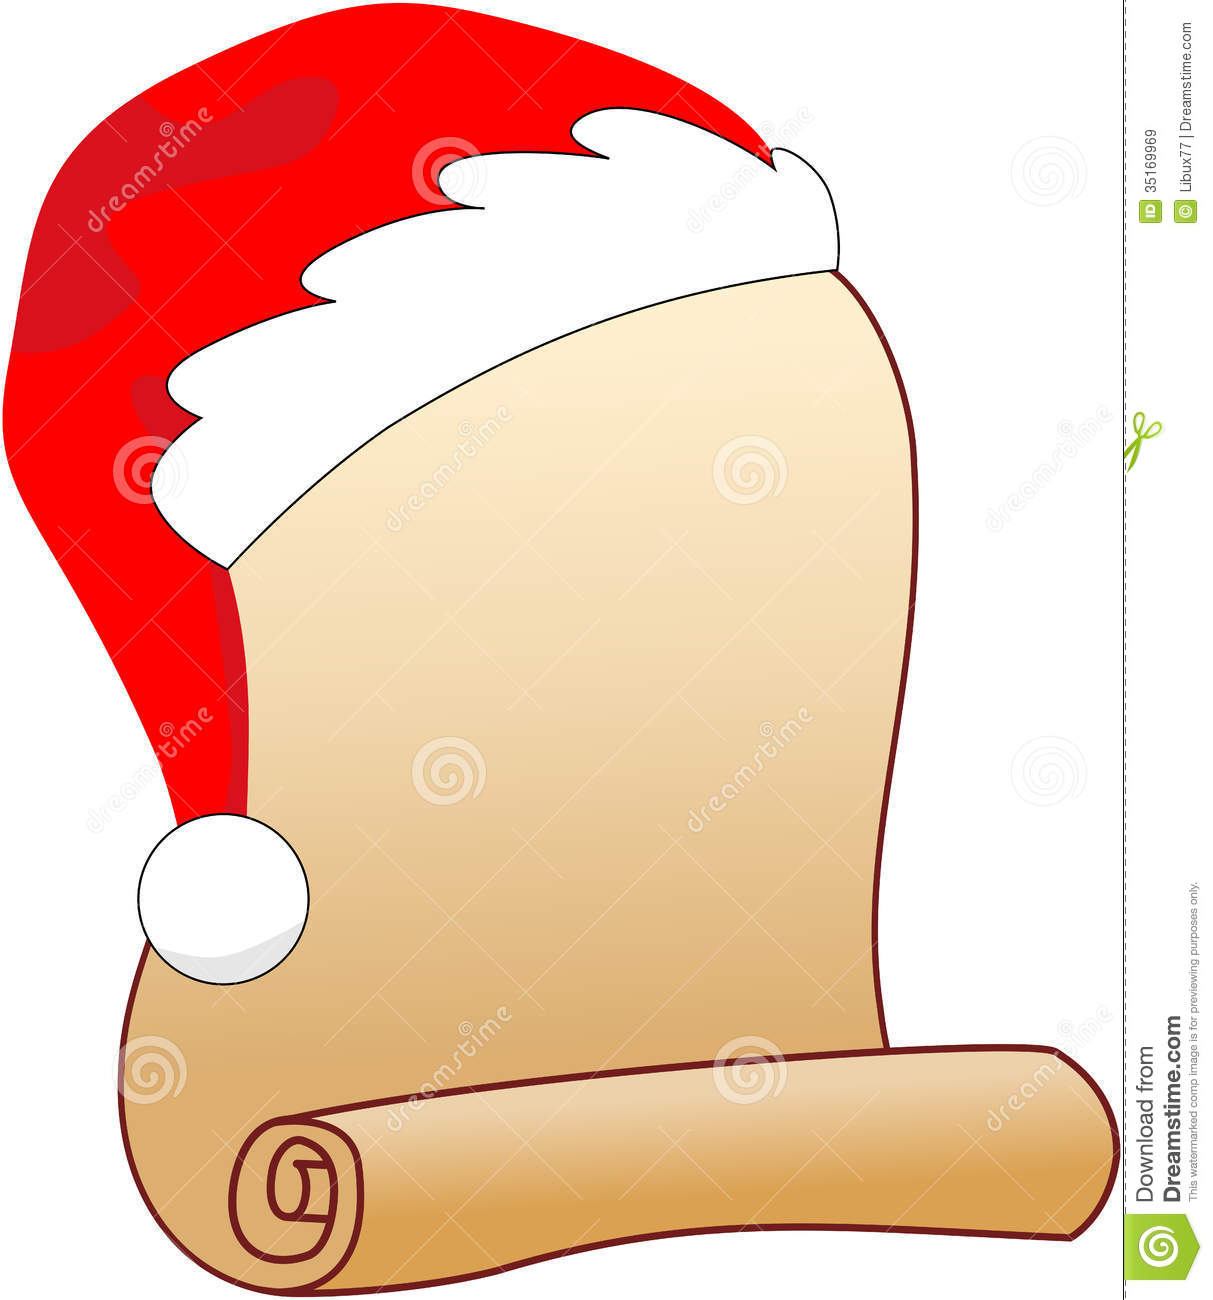 Santa claus list clipart image free library Christmas list clipart - ClipartFest image free library